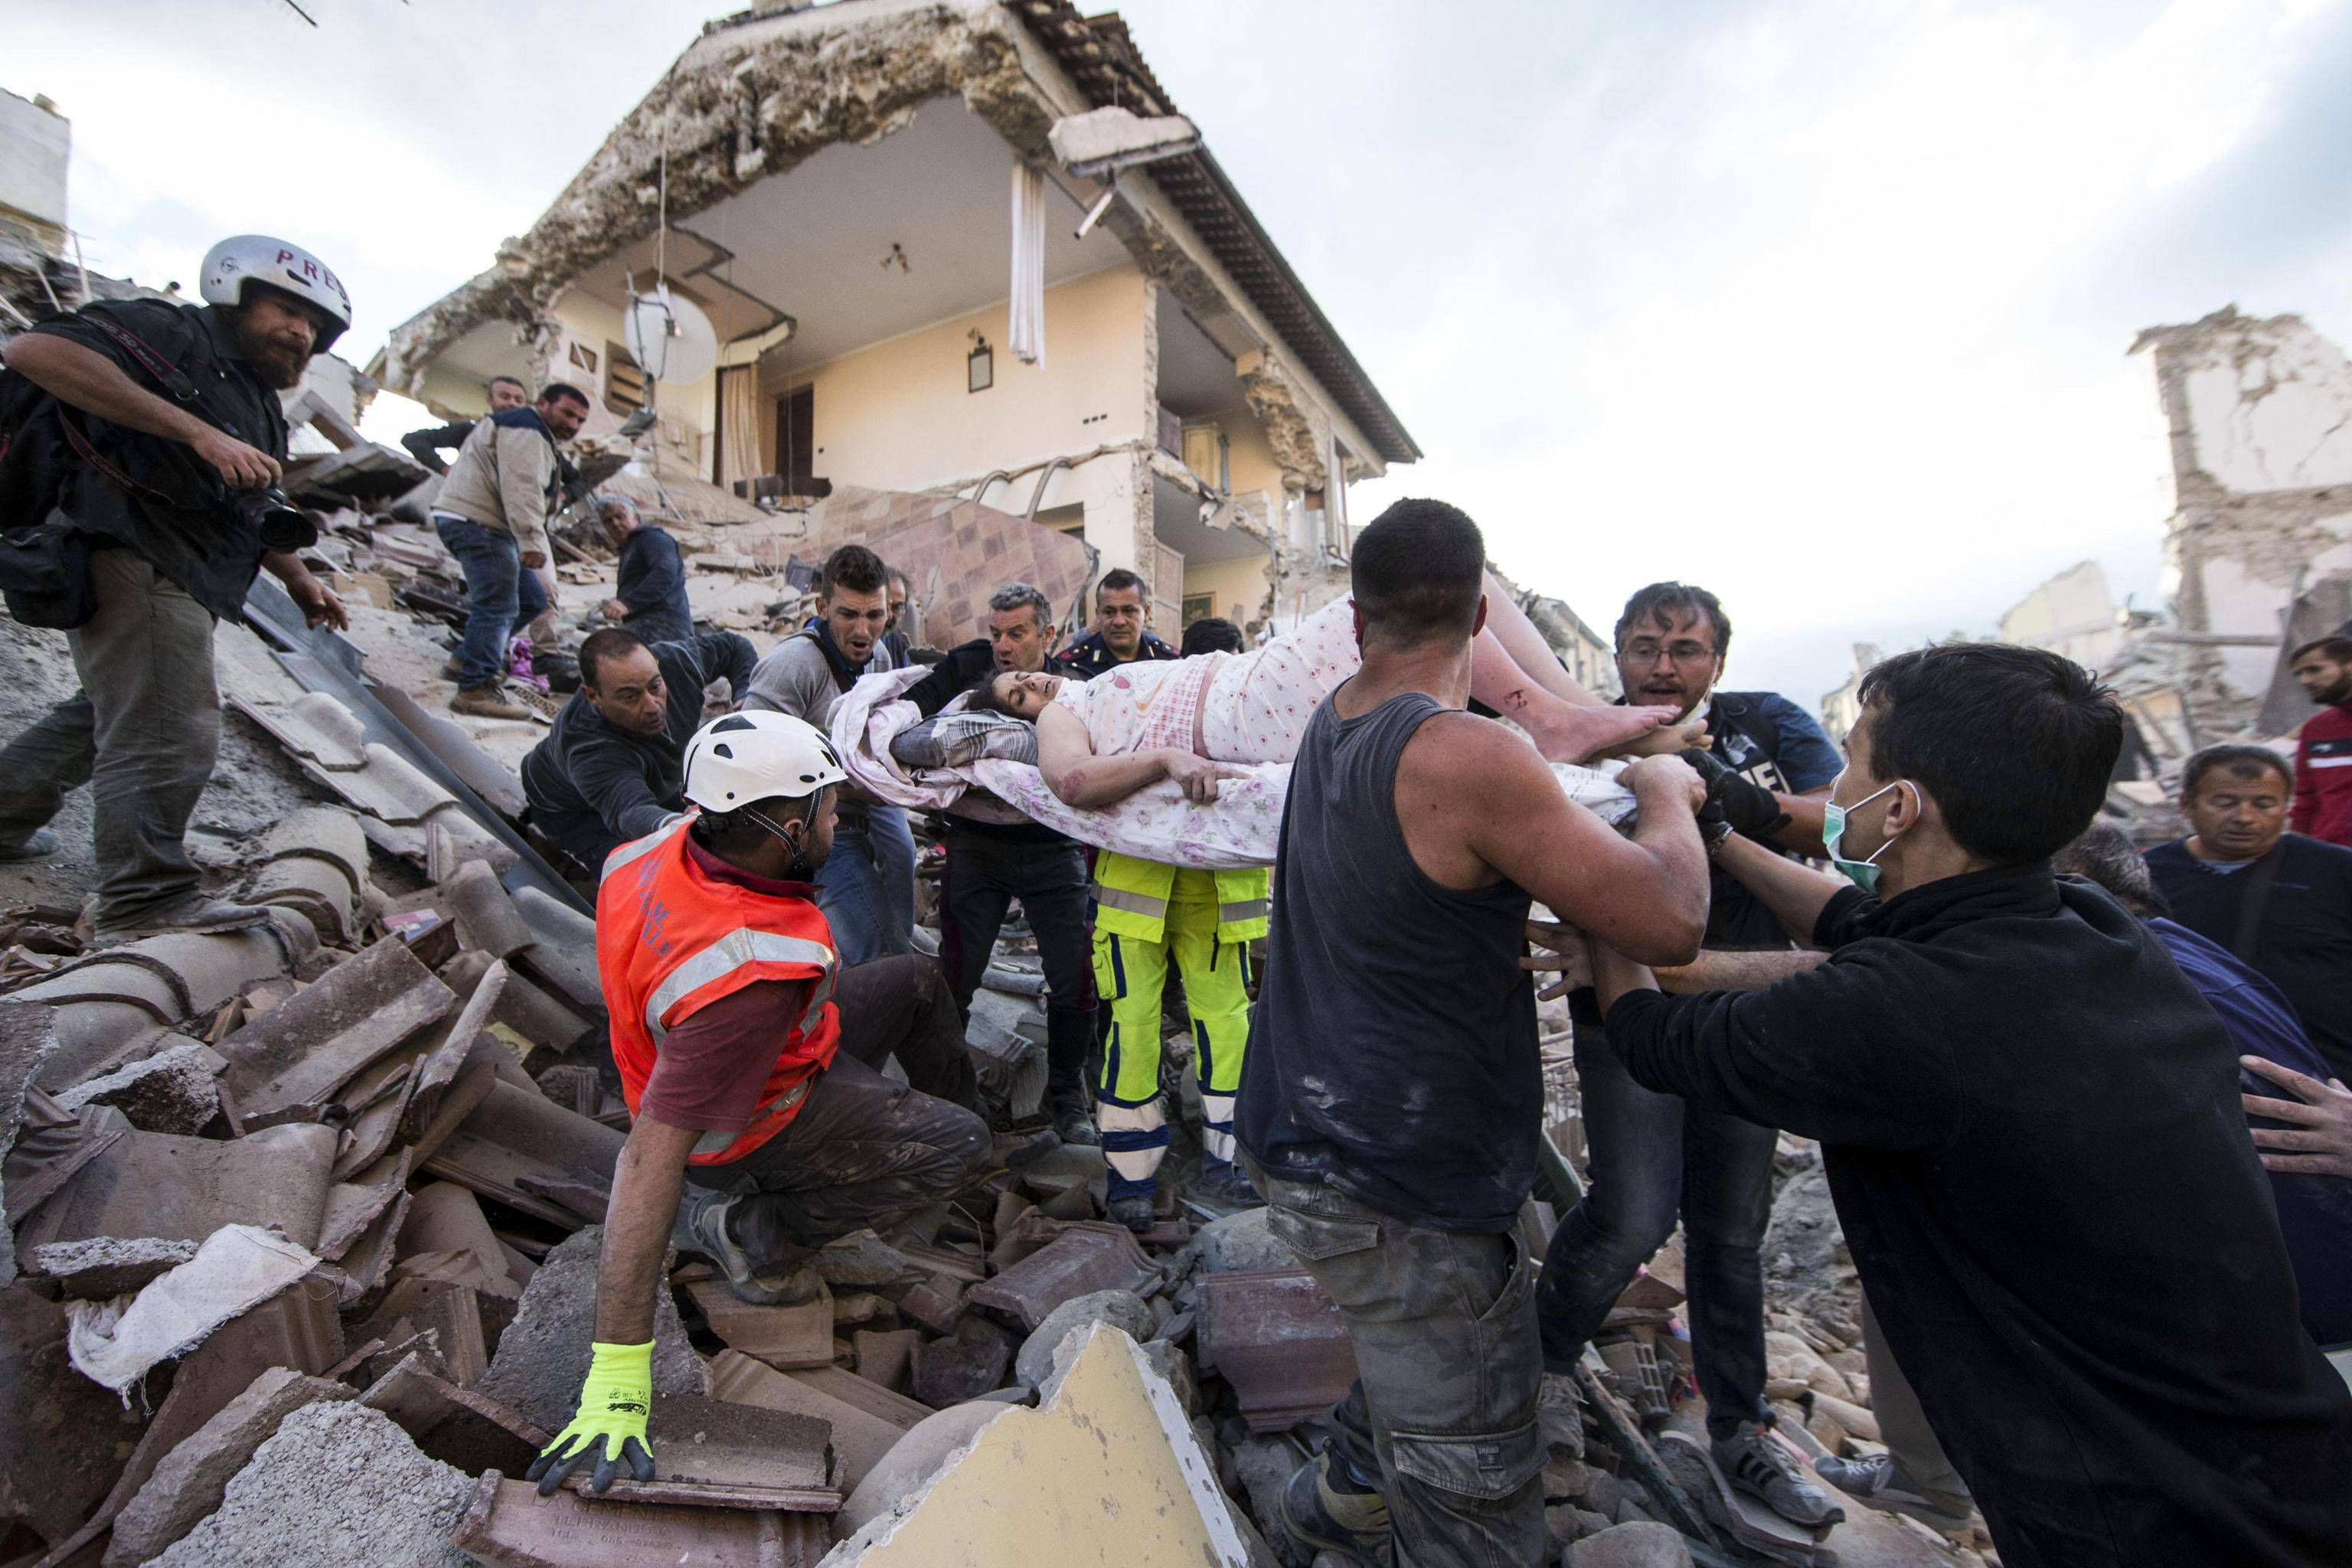 A woman is pulled out of the rubble following an earthquake in Amatrice Italy, Wednesday, Aug. 24, 2016. The magnitude 6 quake struck at 3:36 a.m. (0136 GMT) and was felt across a broad swath of central Italy, including Rome where residents of the capital felt a long swaying followed by aftershocks.